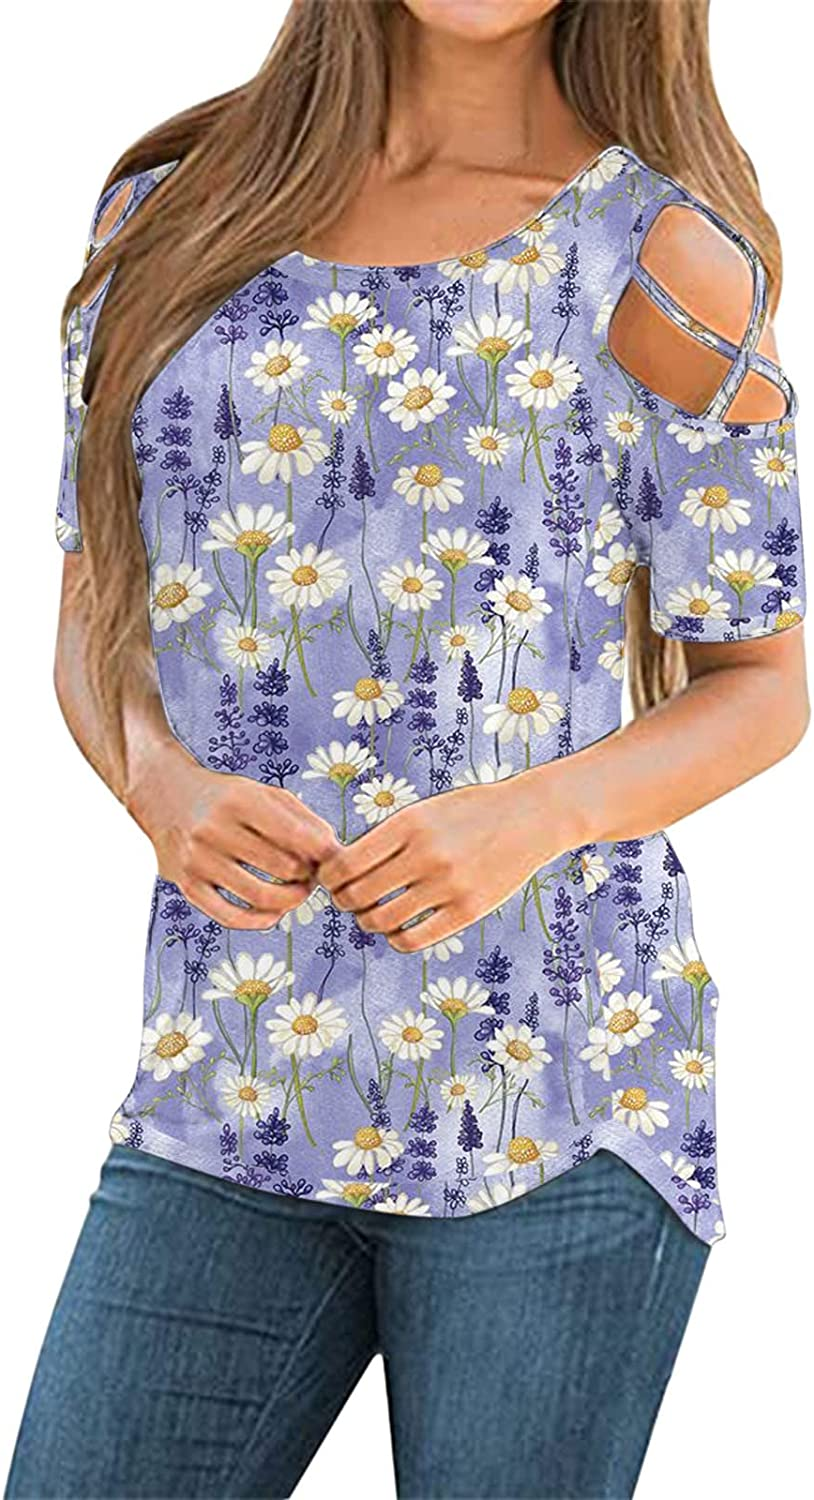 Short Sleeve Tops for Women,Womens Summer Casual T Shirts Short Sleeve Strappy Cold Shoulder Blouses Tunic Tee Tops Purple